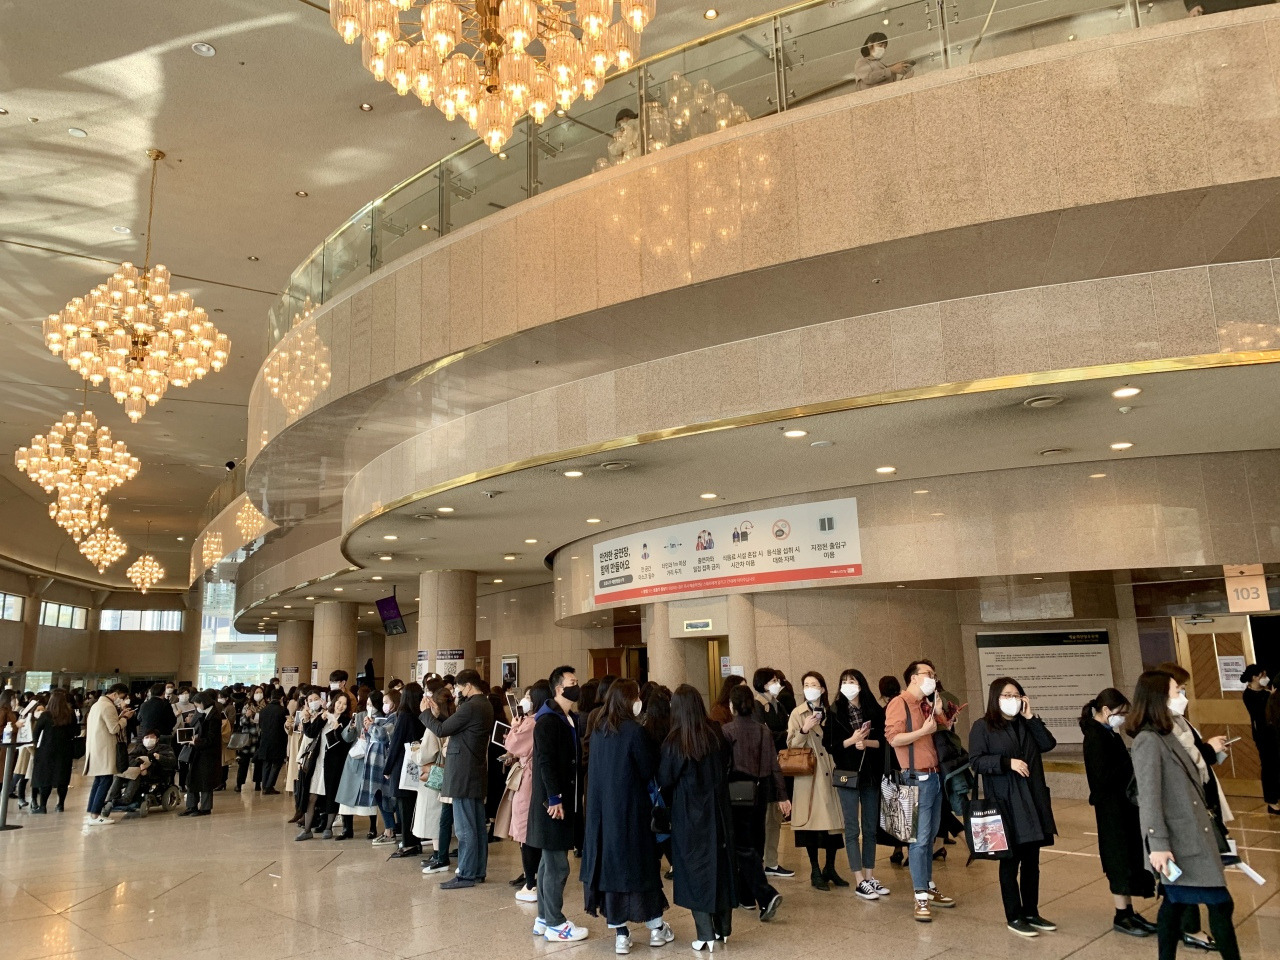 Audience members line up to purchase Cho Seong-jin's autographed album prior to Wednesday afternoon's recital. (Im Eun-byel / The Korea Herald)